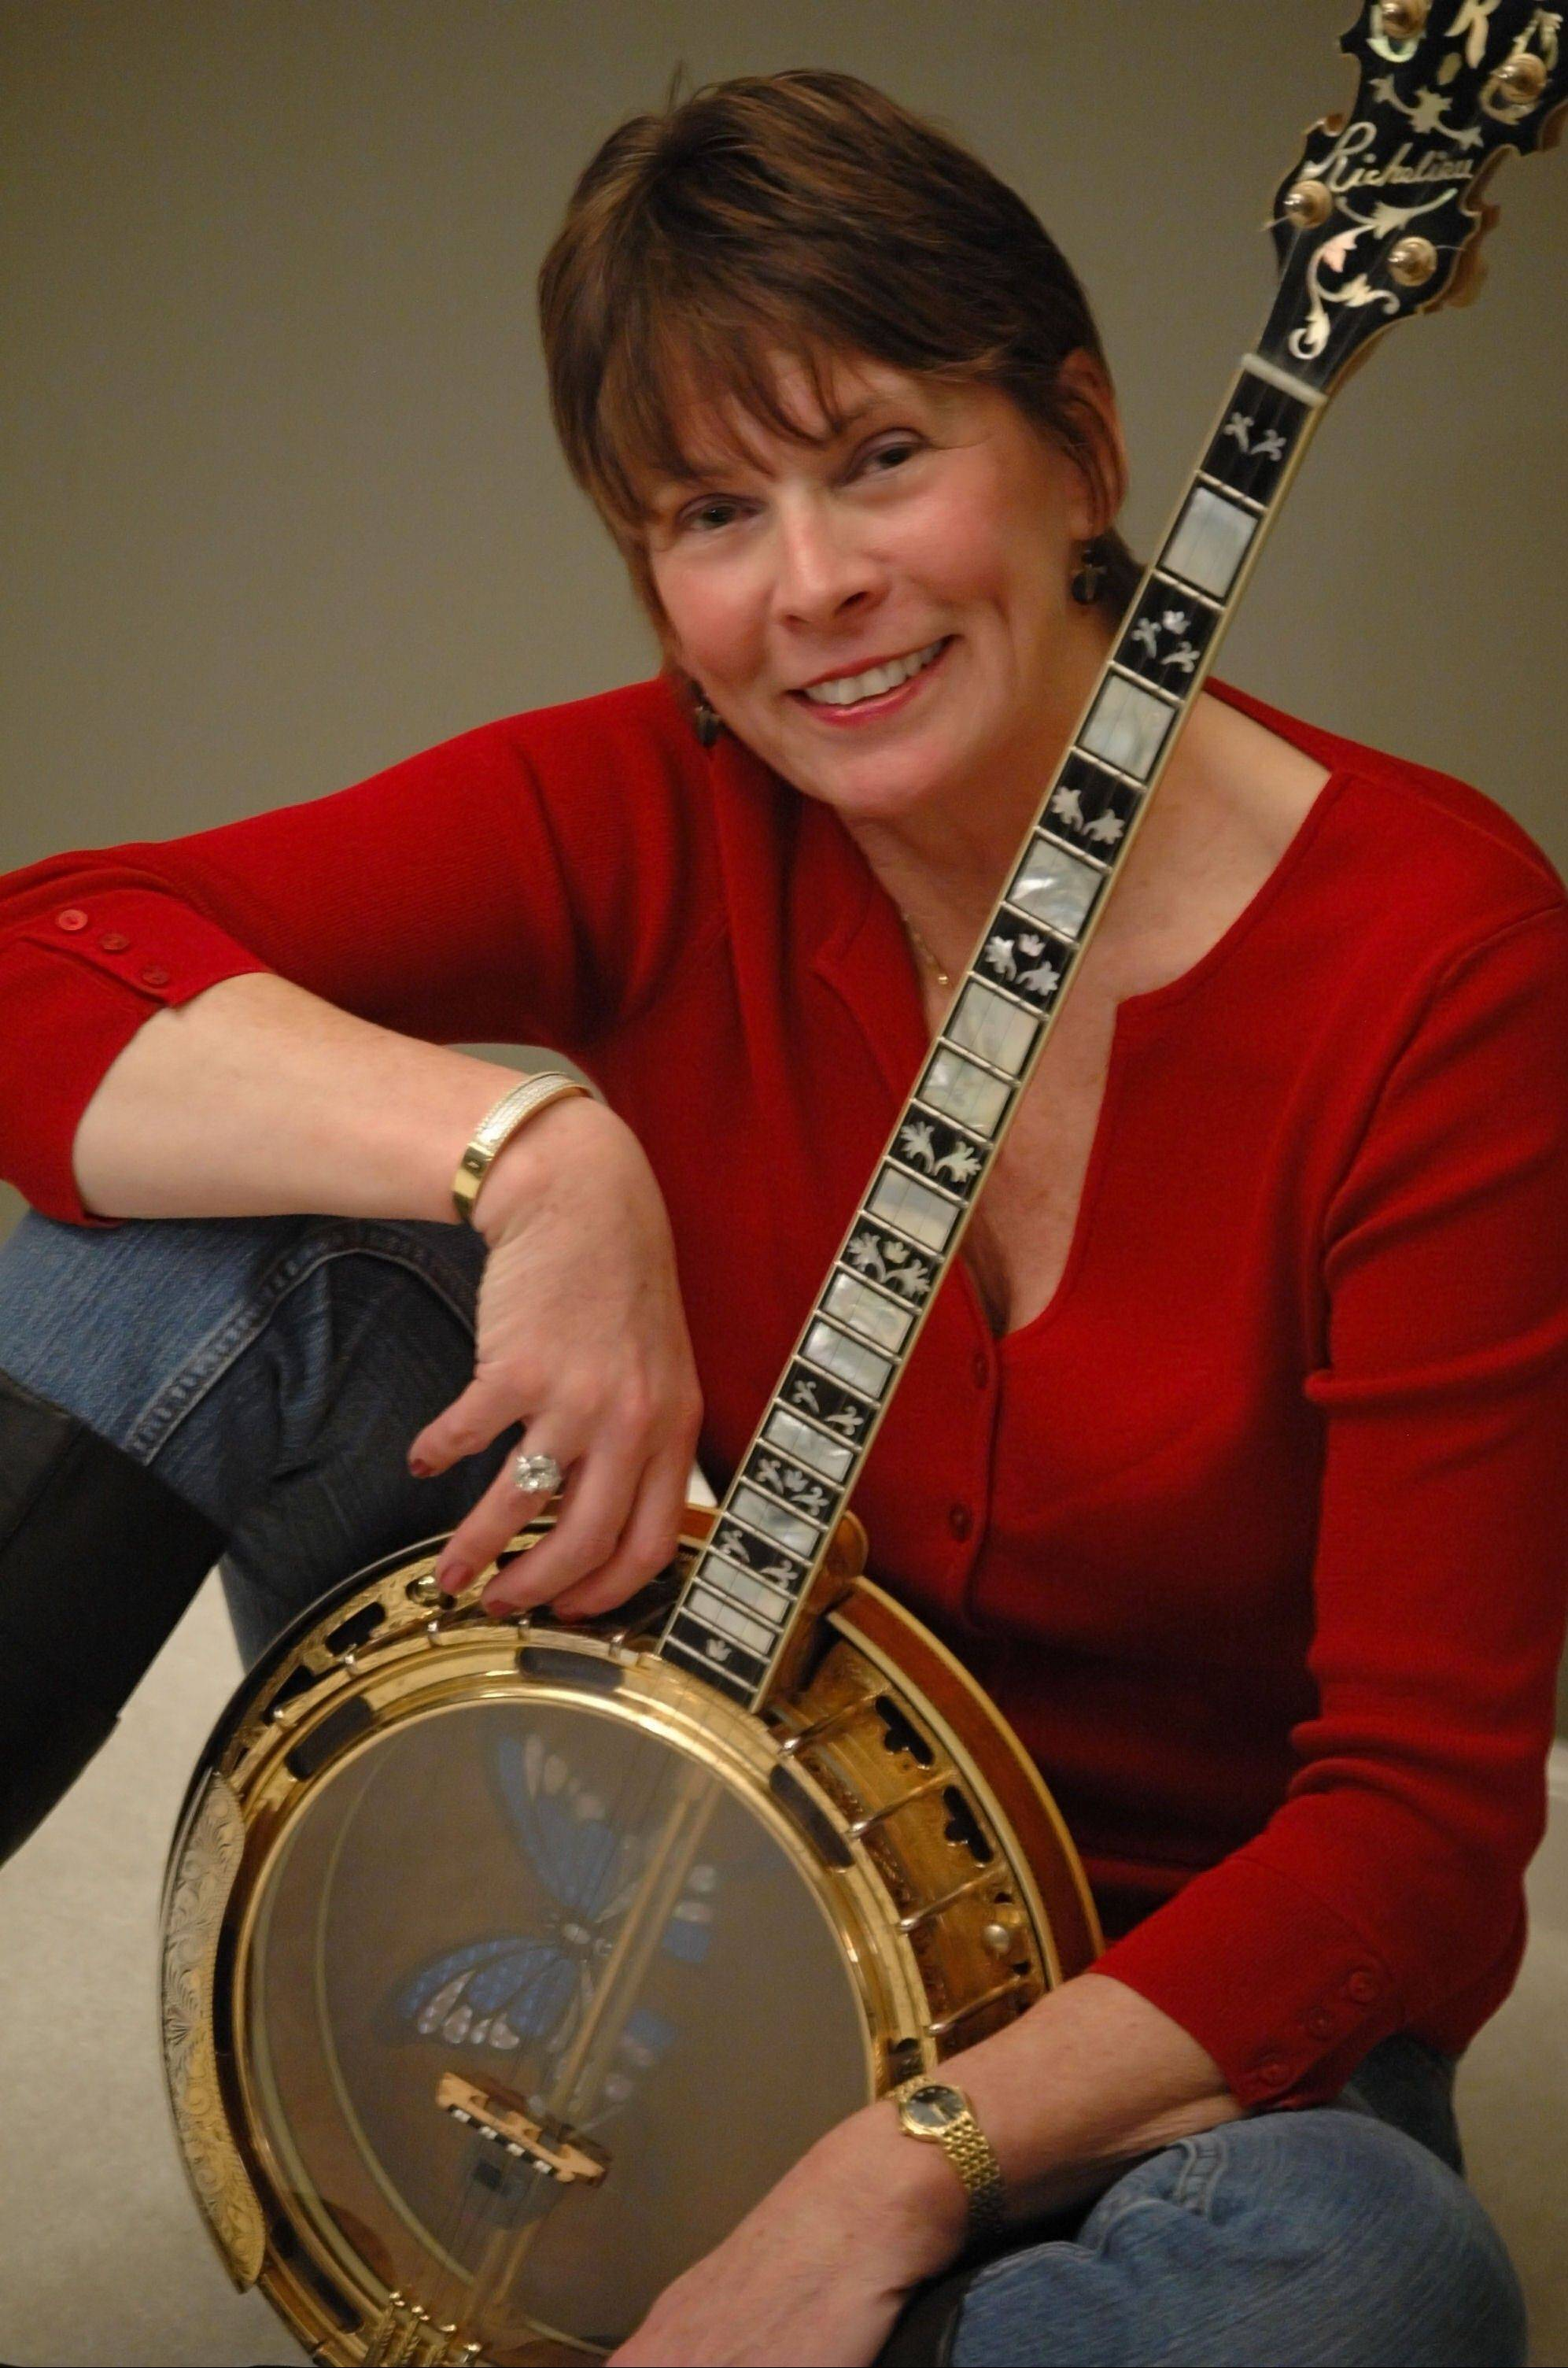 Jazz banjoist and singer Ann Stewart of Carol Stream is the leader of five-member The Banjo Buddies Dixieland Jazz Band.